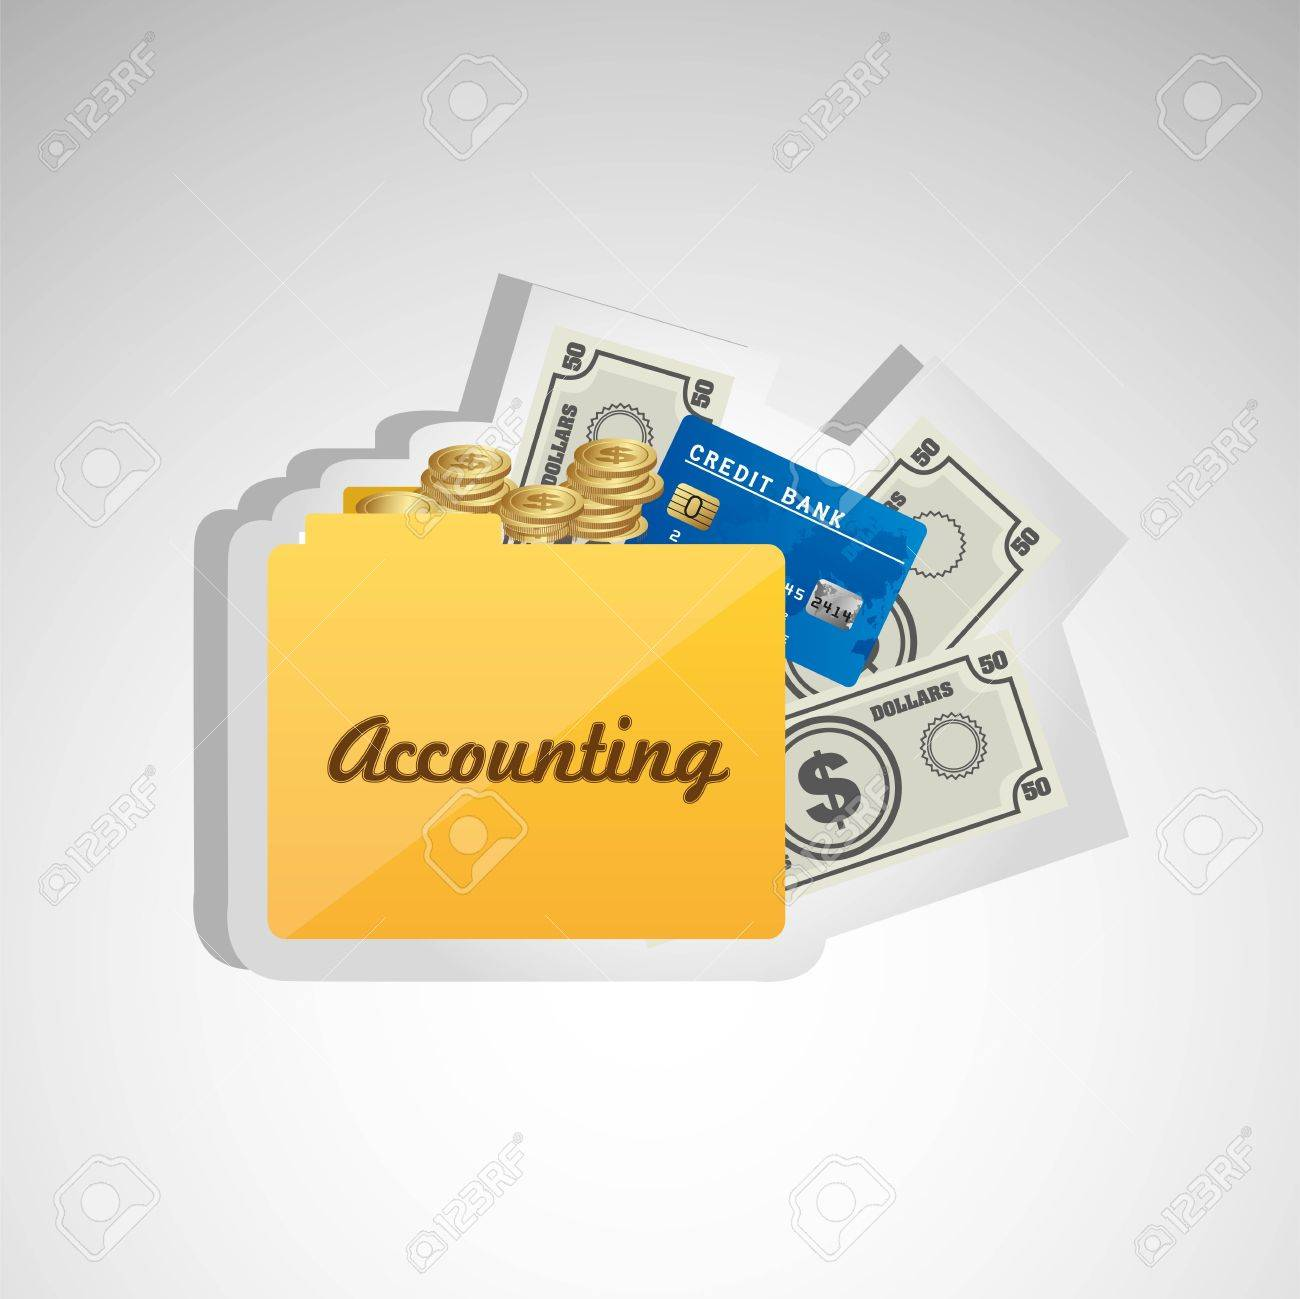 icon of accounting, credit card folder, banknotes and coins, for accounting and finance icon. Stock Vector - 14044232